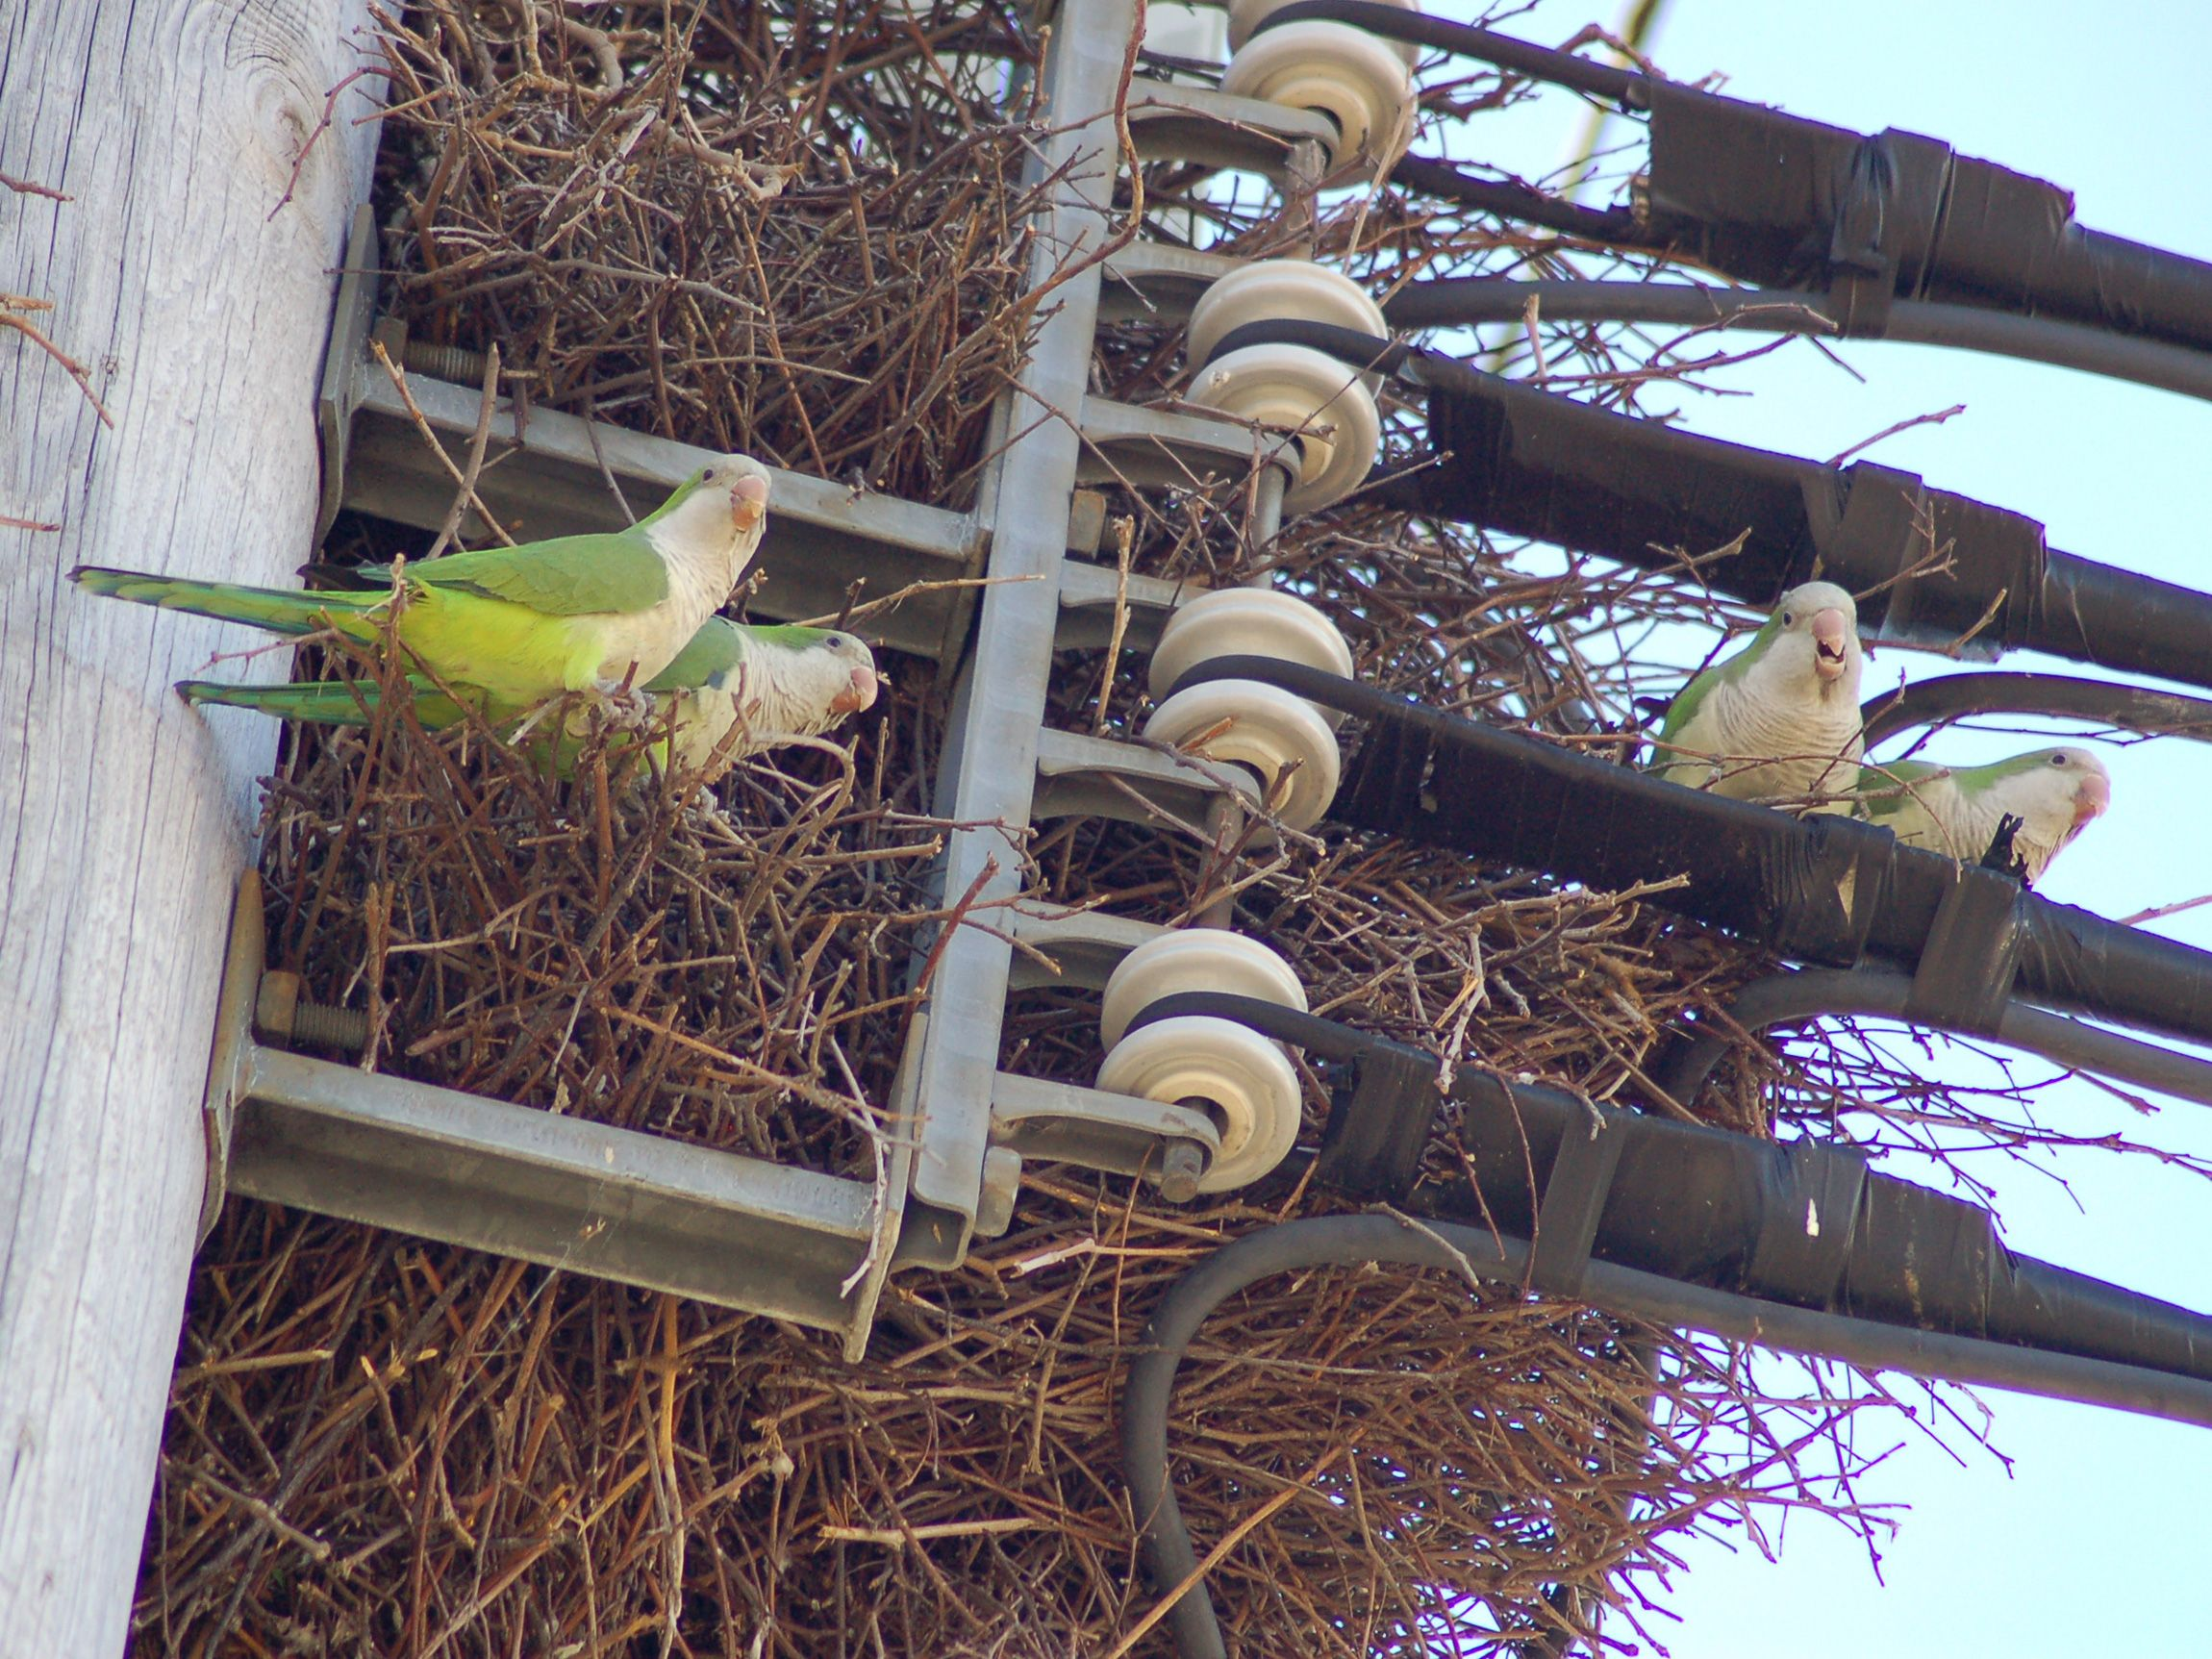 Please Contact PSE&G to protest Quaker Parrot nest removal ...